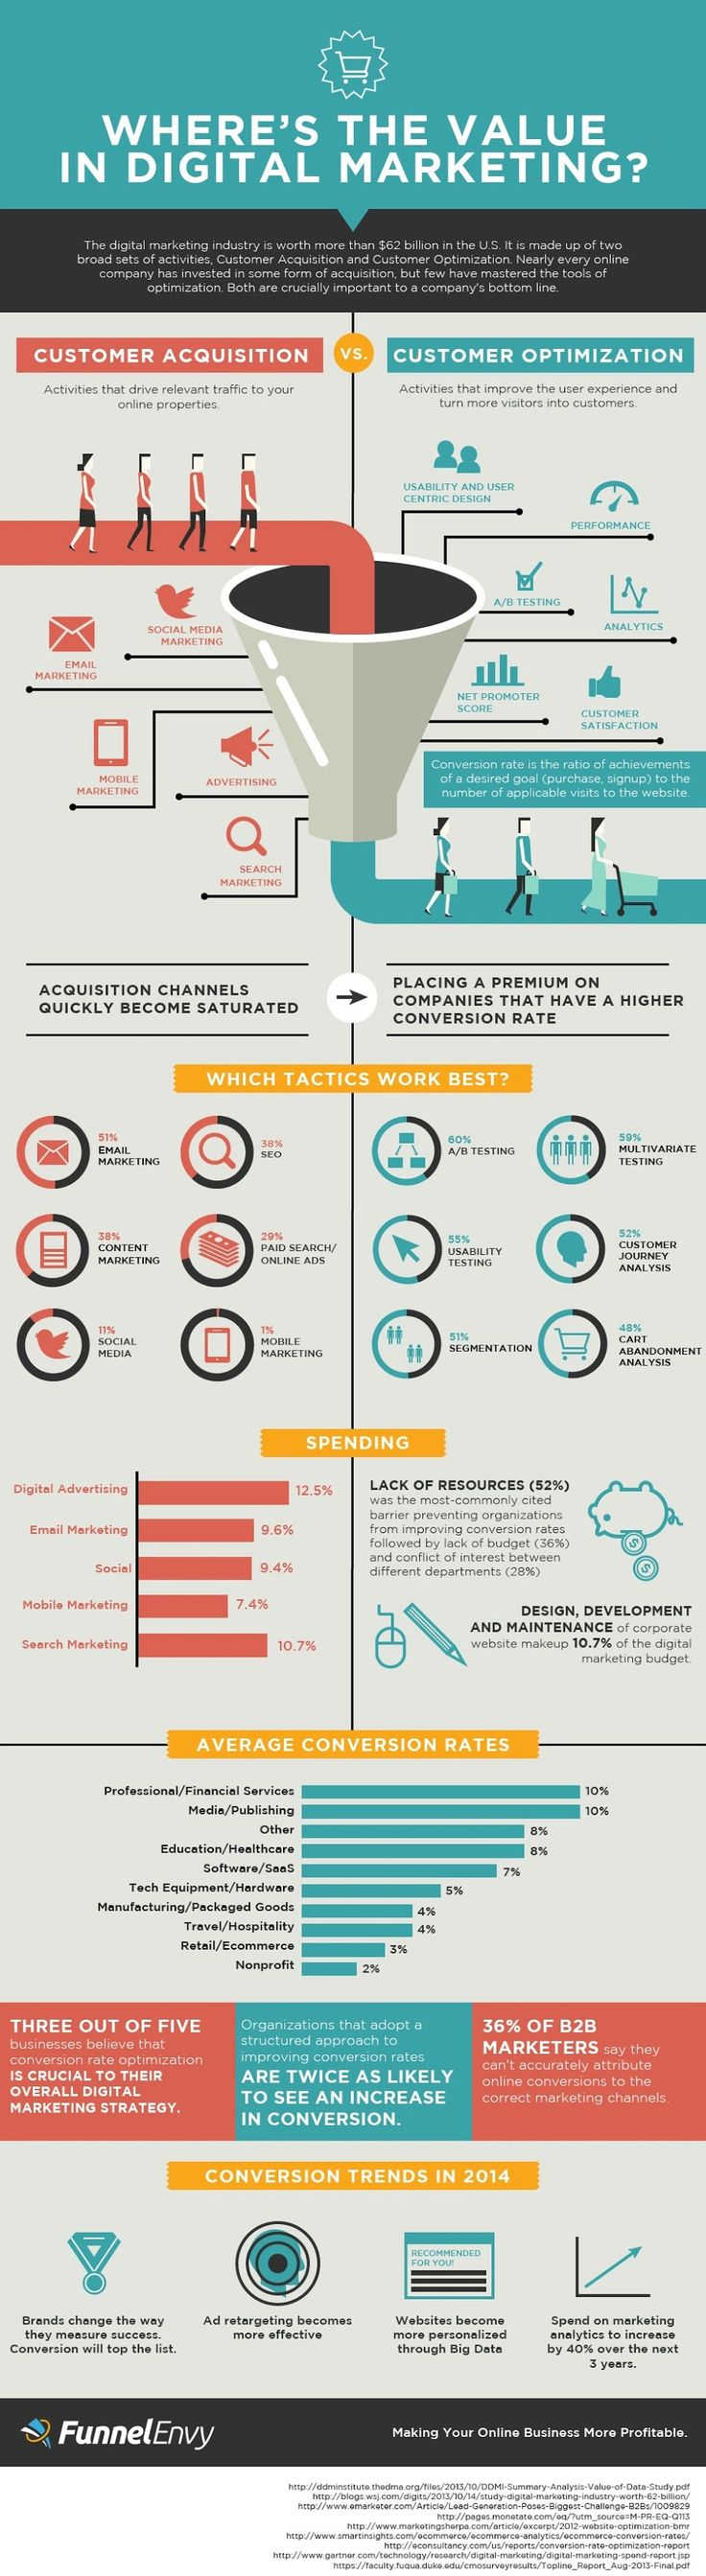 Advertising-Infographics-Wheres-The-Value-in-Digital-Marketing Advertising Infographics : Where's The Value in Digital Marketing - infographic